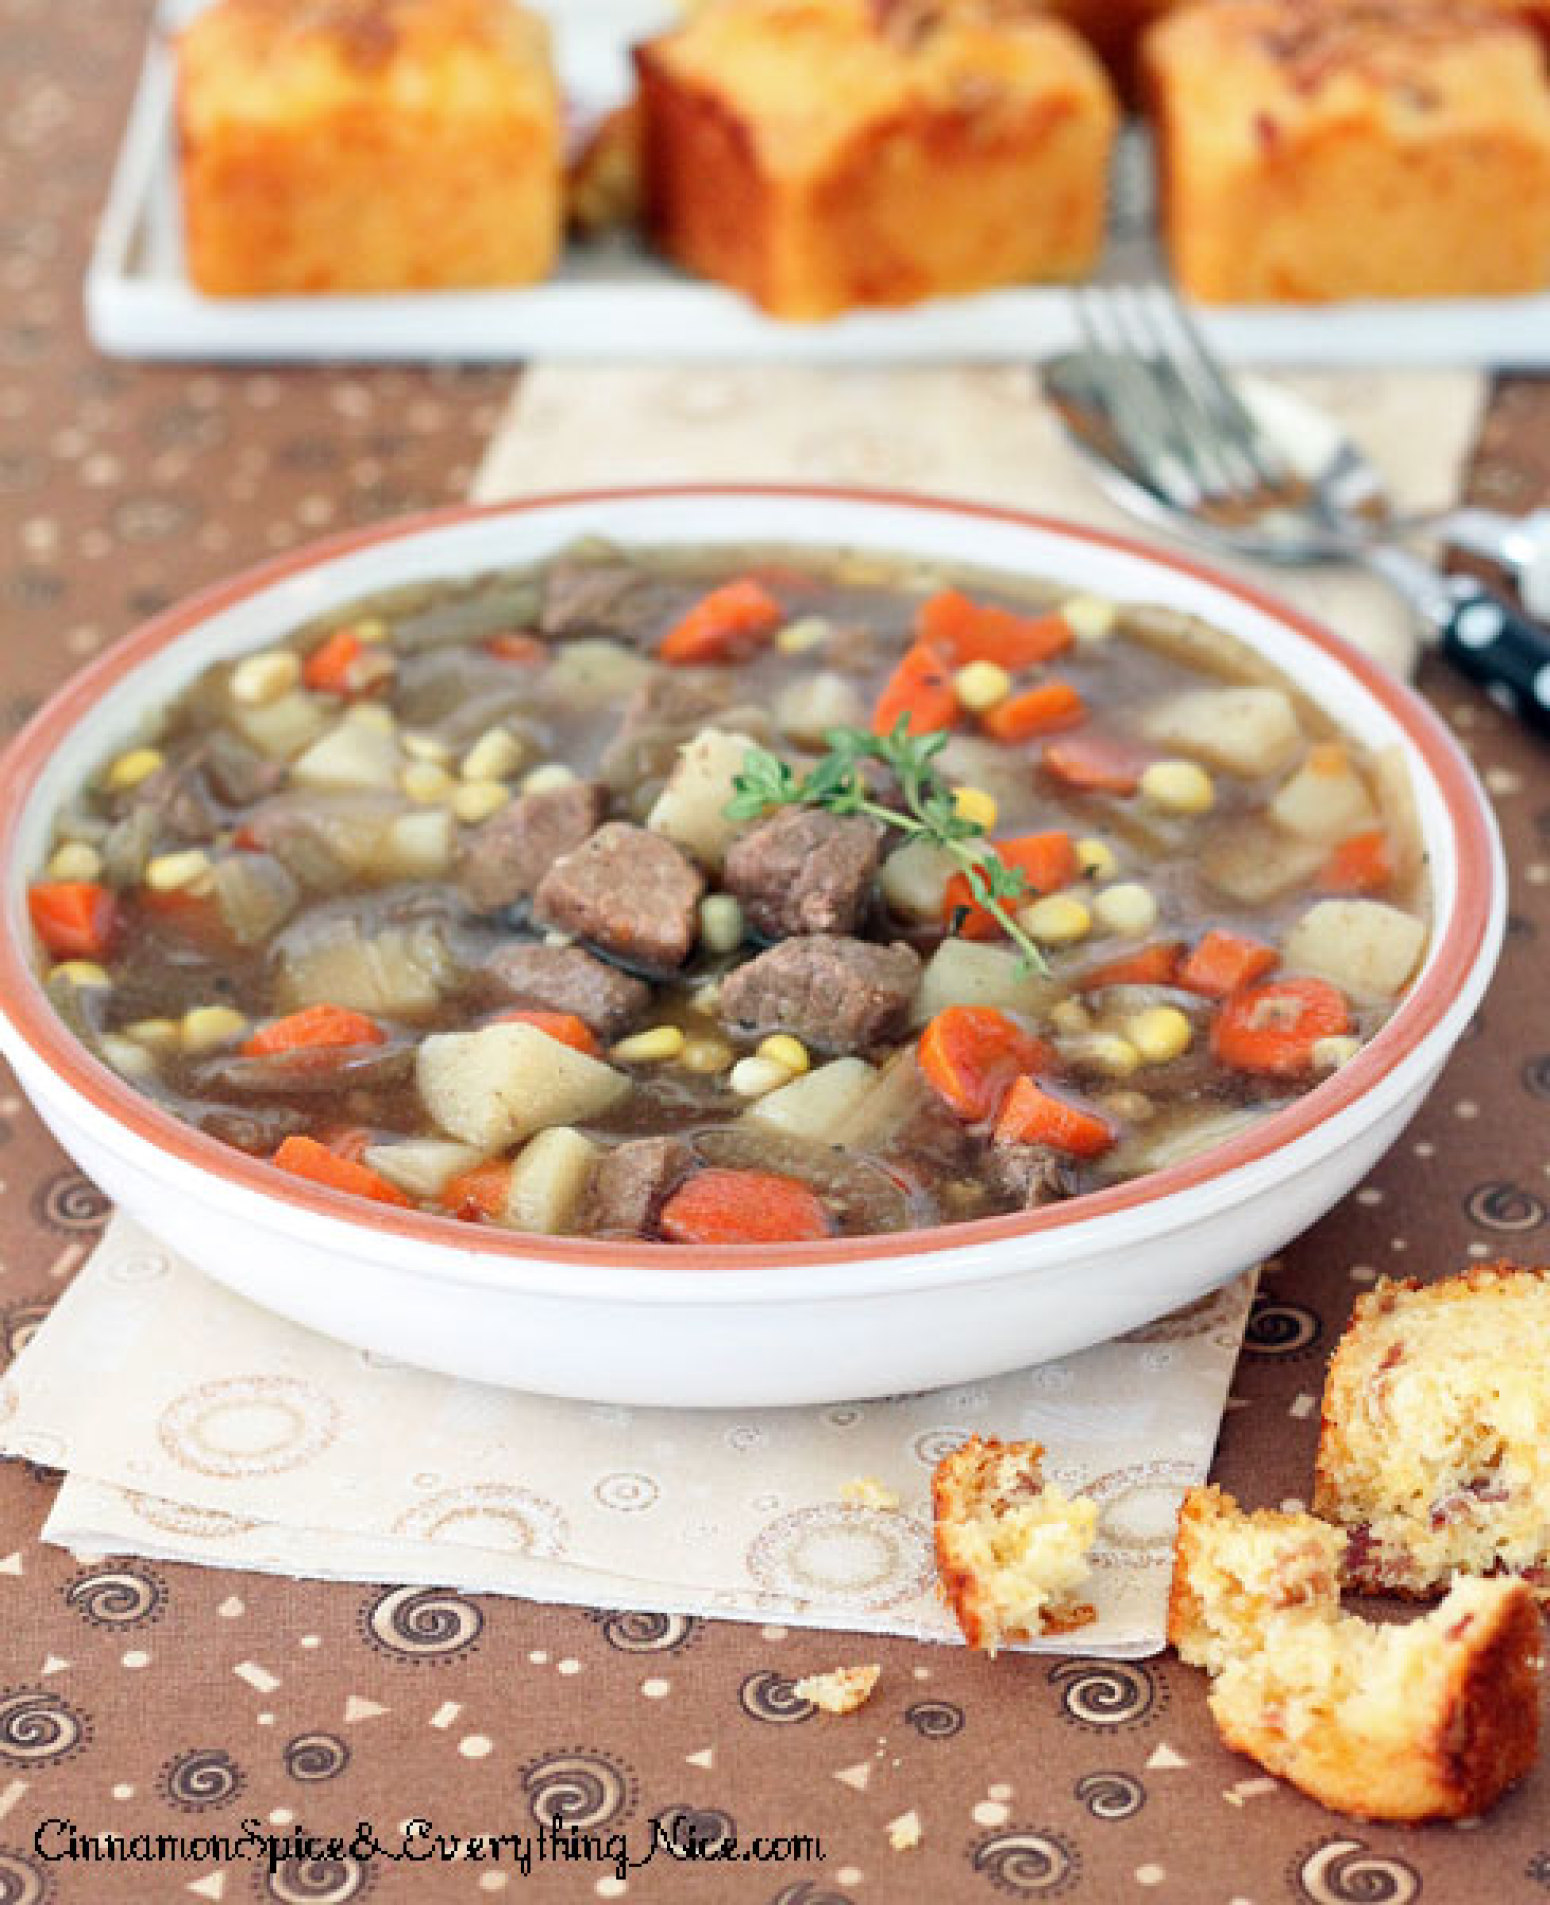 Red Wine Beef Stew Recipe 2 | Just A Pinch Recipes